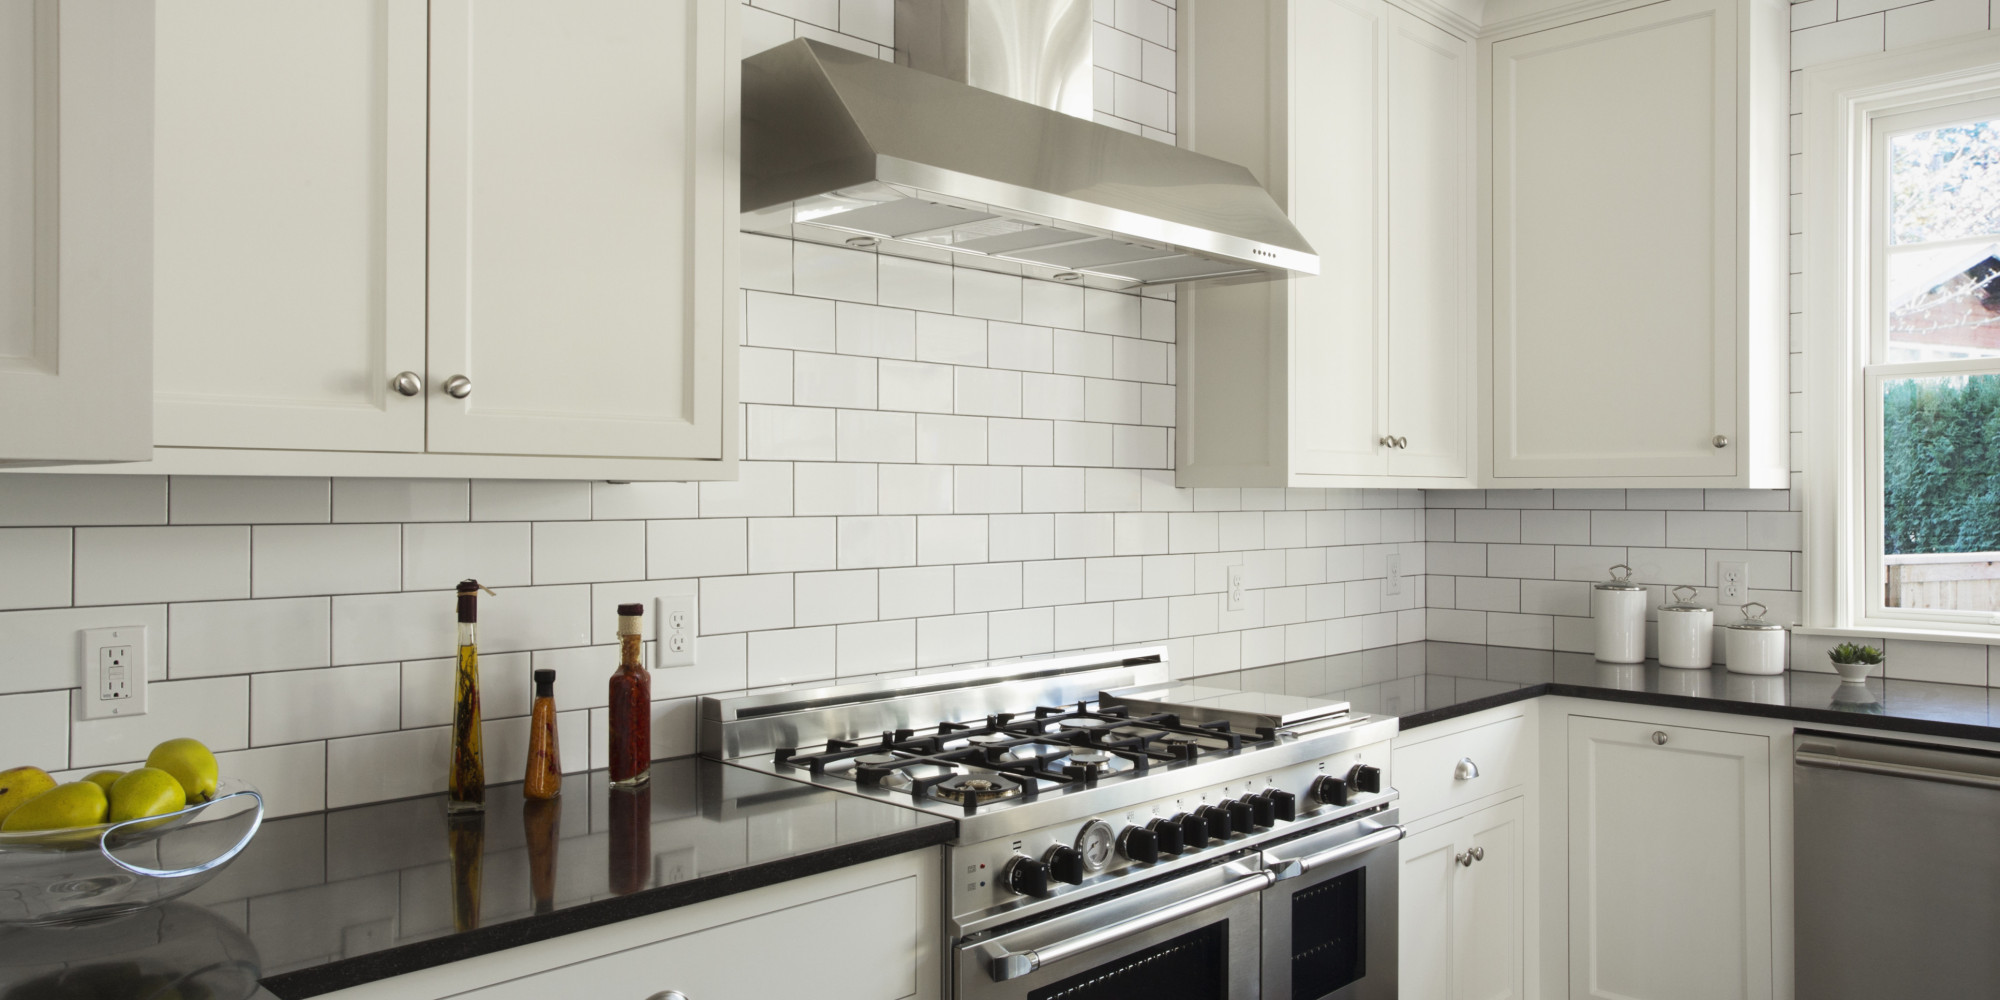 Best Way To Clean Granite Countertops How To Get A Spotless Beautifully Organized Kitchen In A